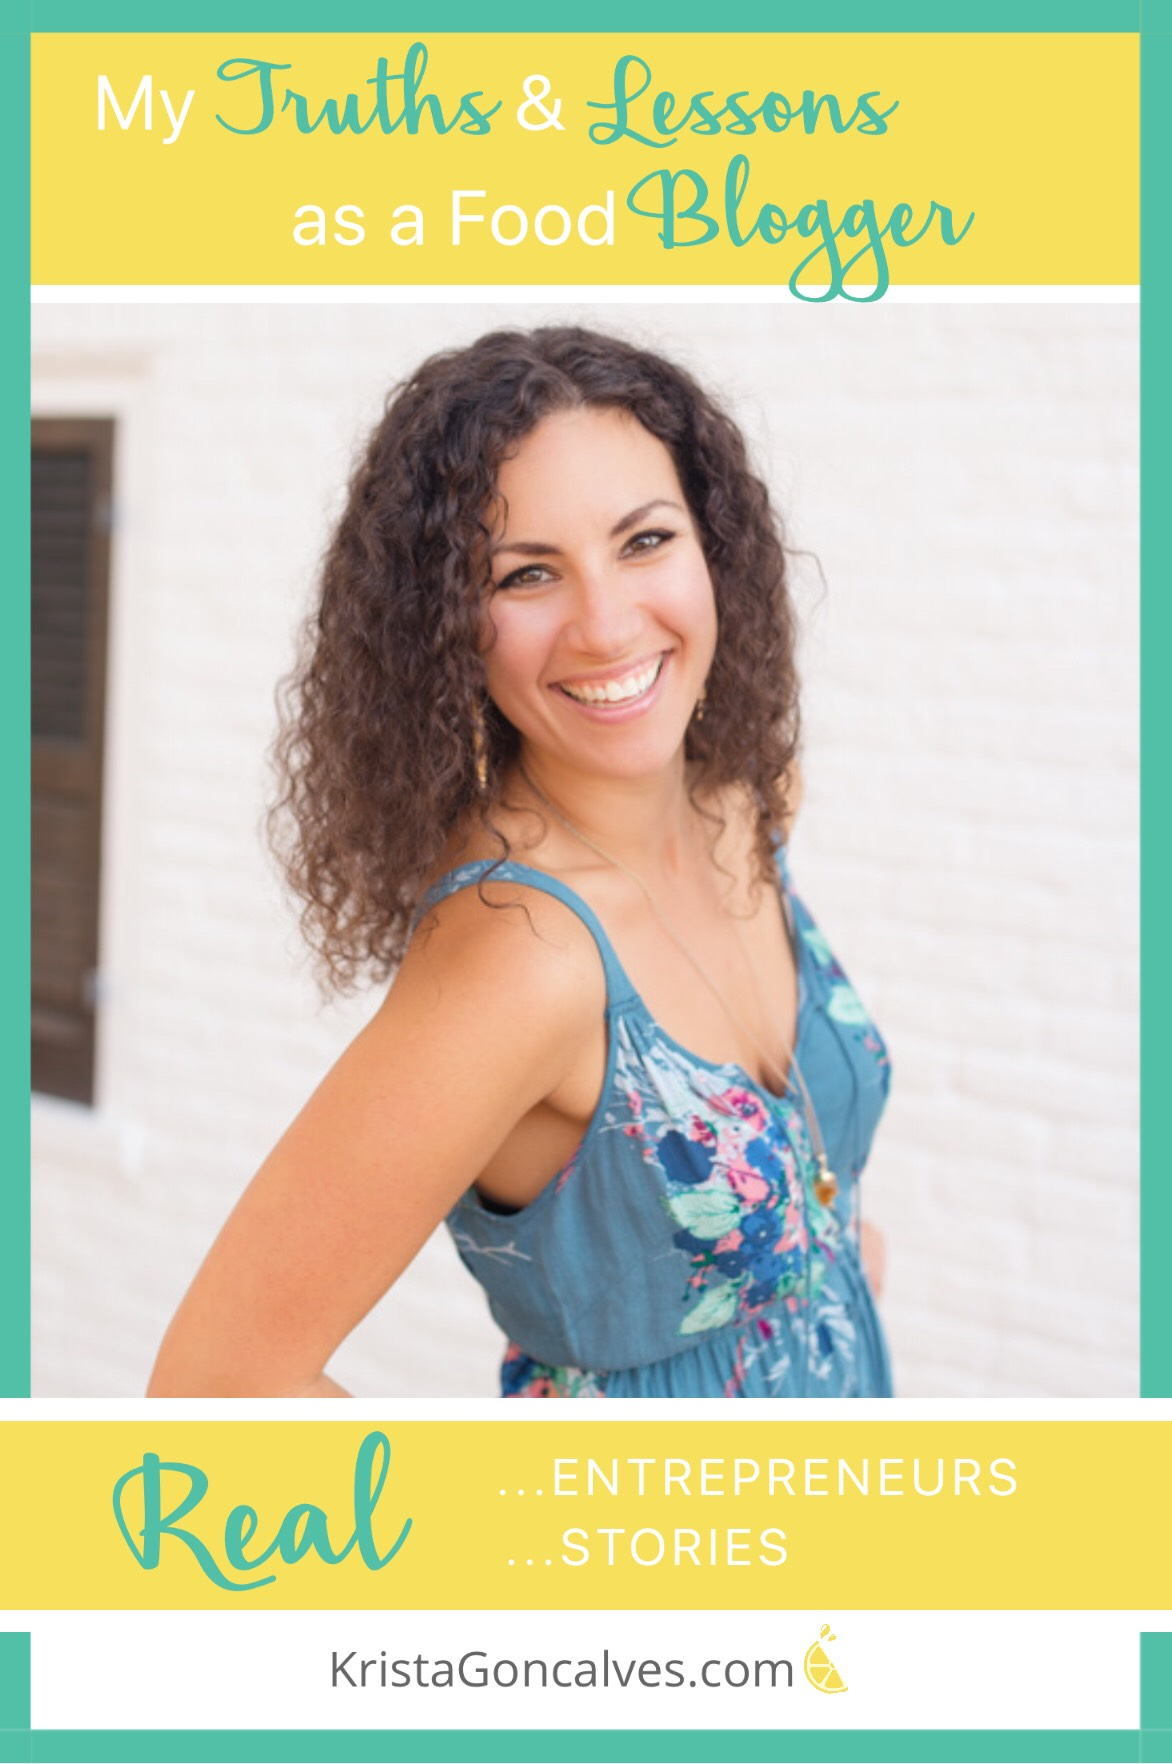 Sharon Lehman, RD | My Truths & Lessons as a Food Blogger